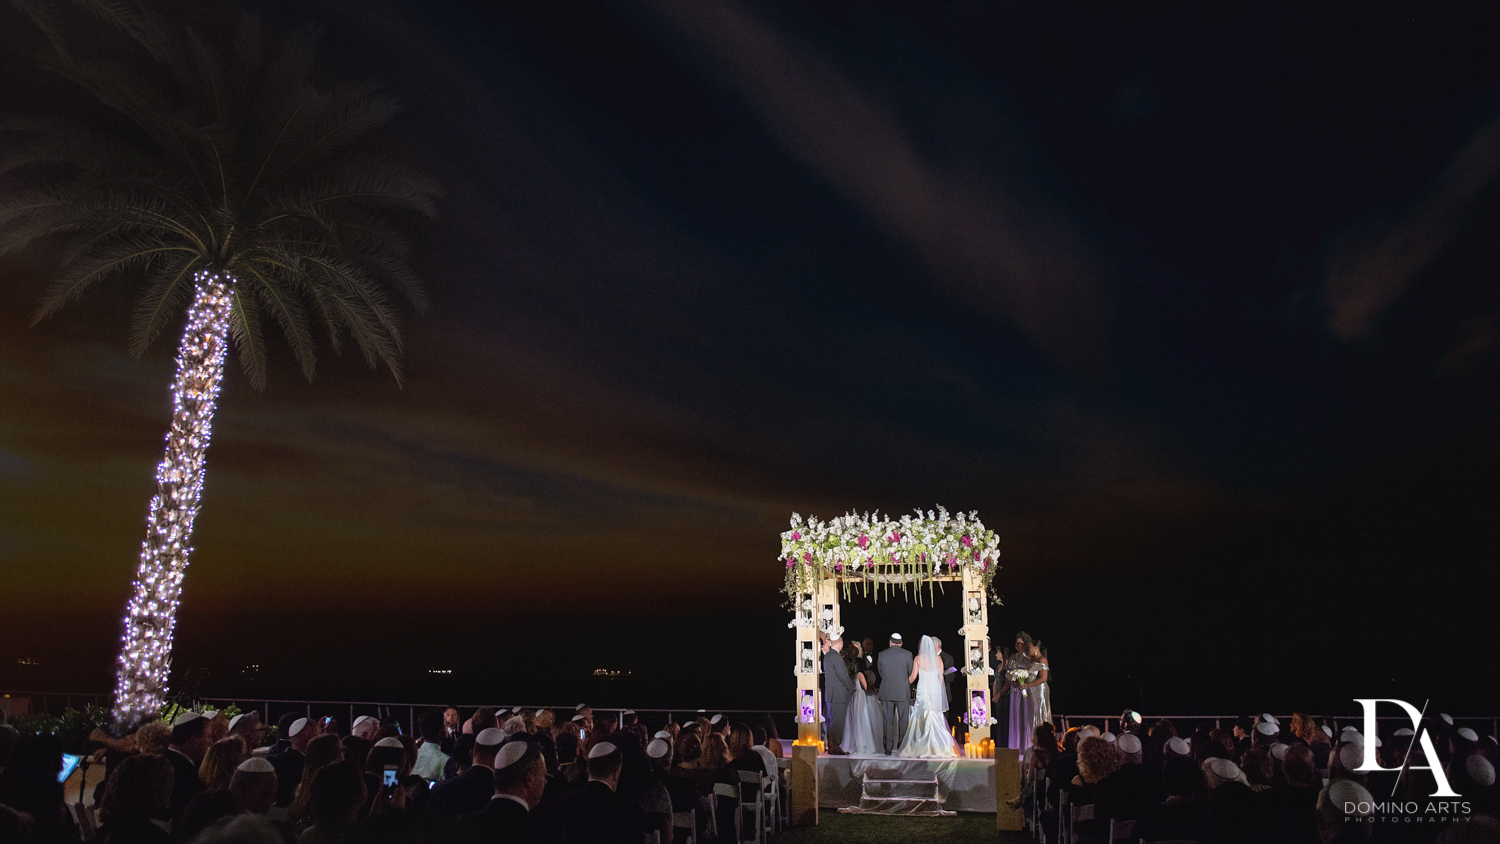 Oceanside Wedding Photography in South Florida at Fort Lauderdale Marriott Harbor Beach Resort & Spa by Domino Arts Photography